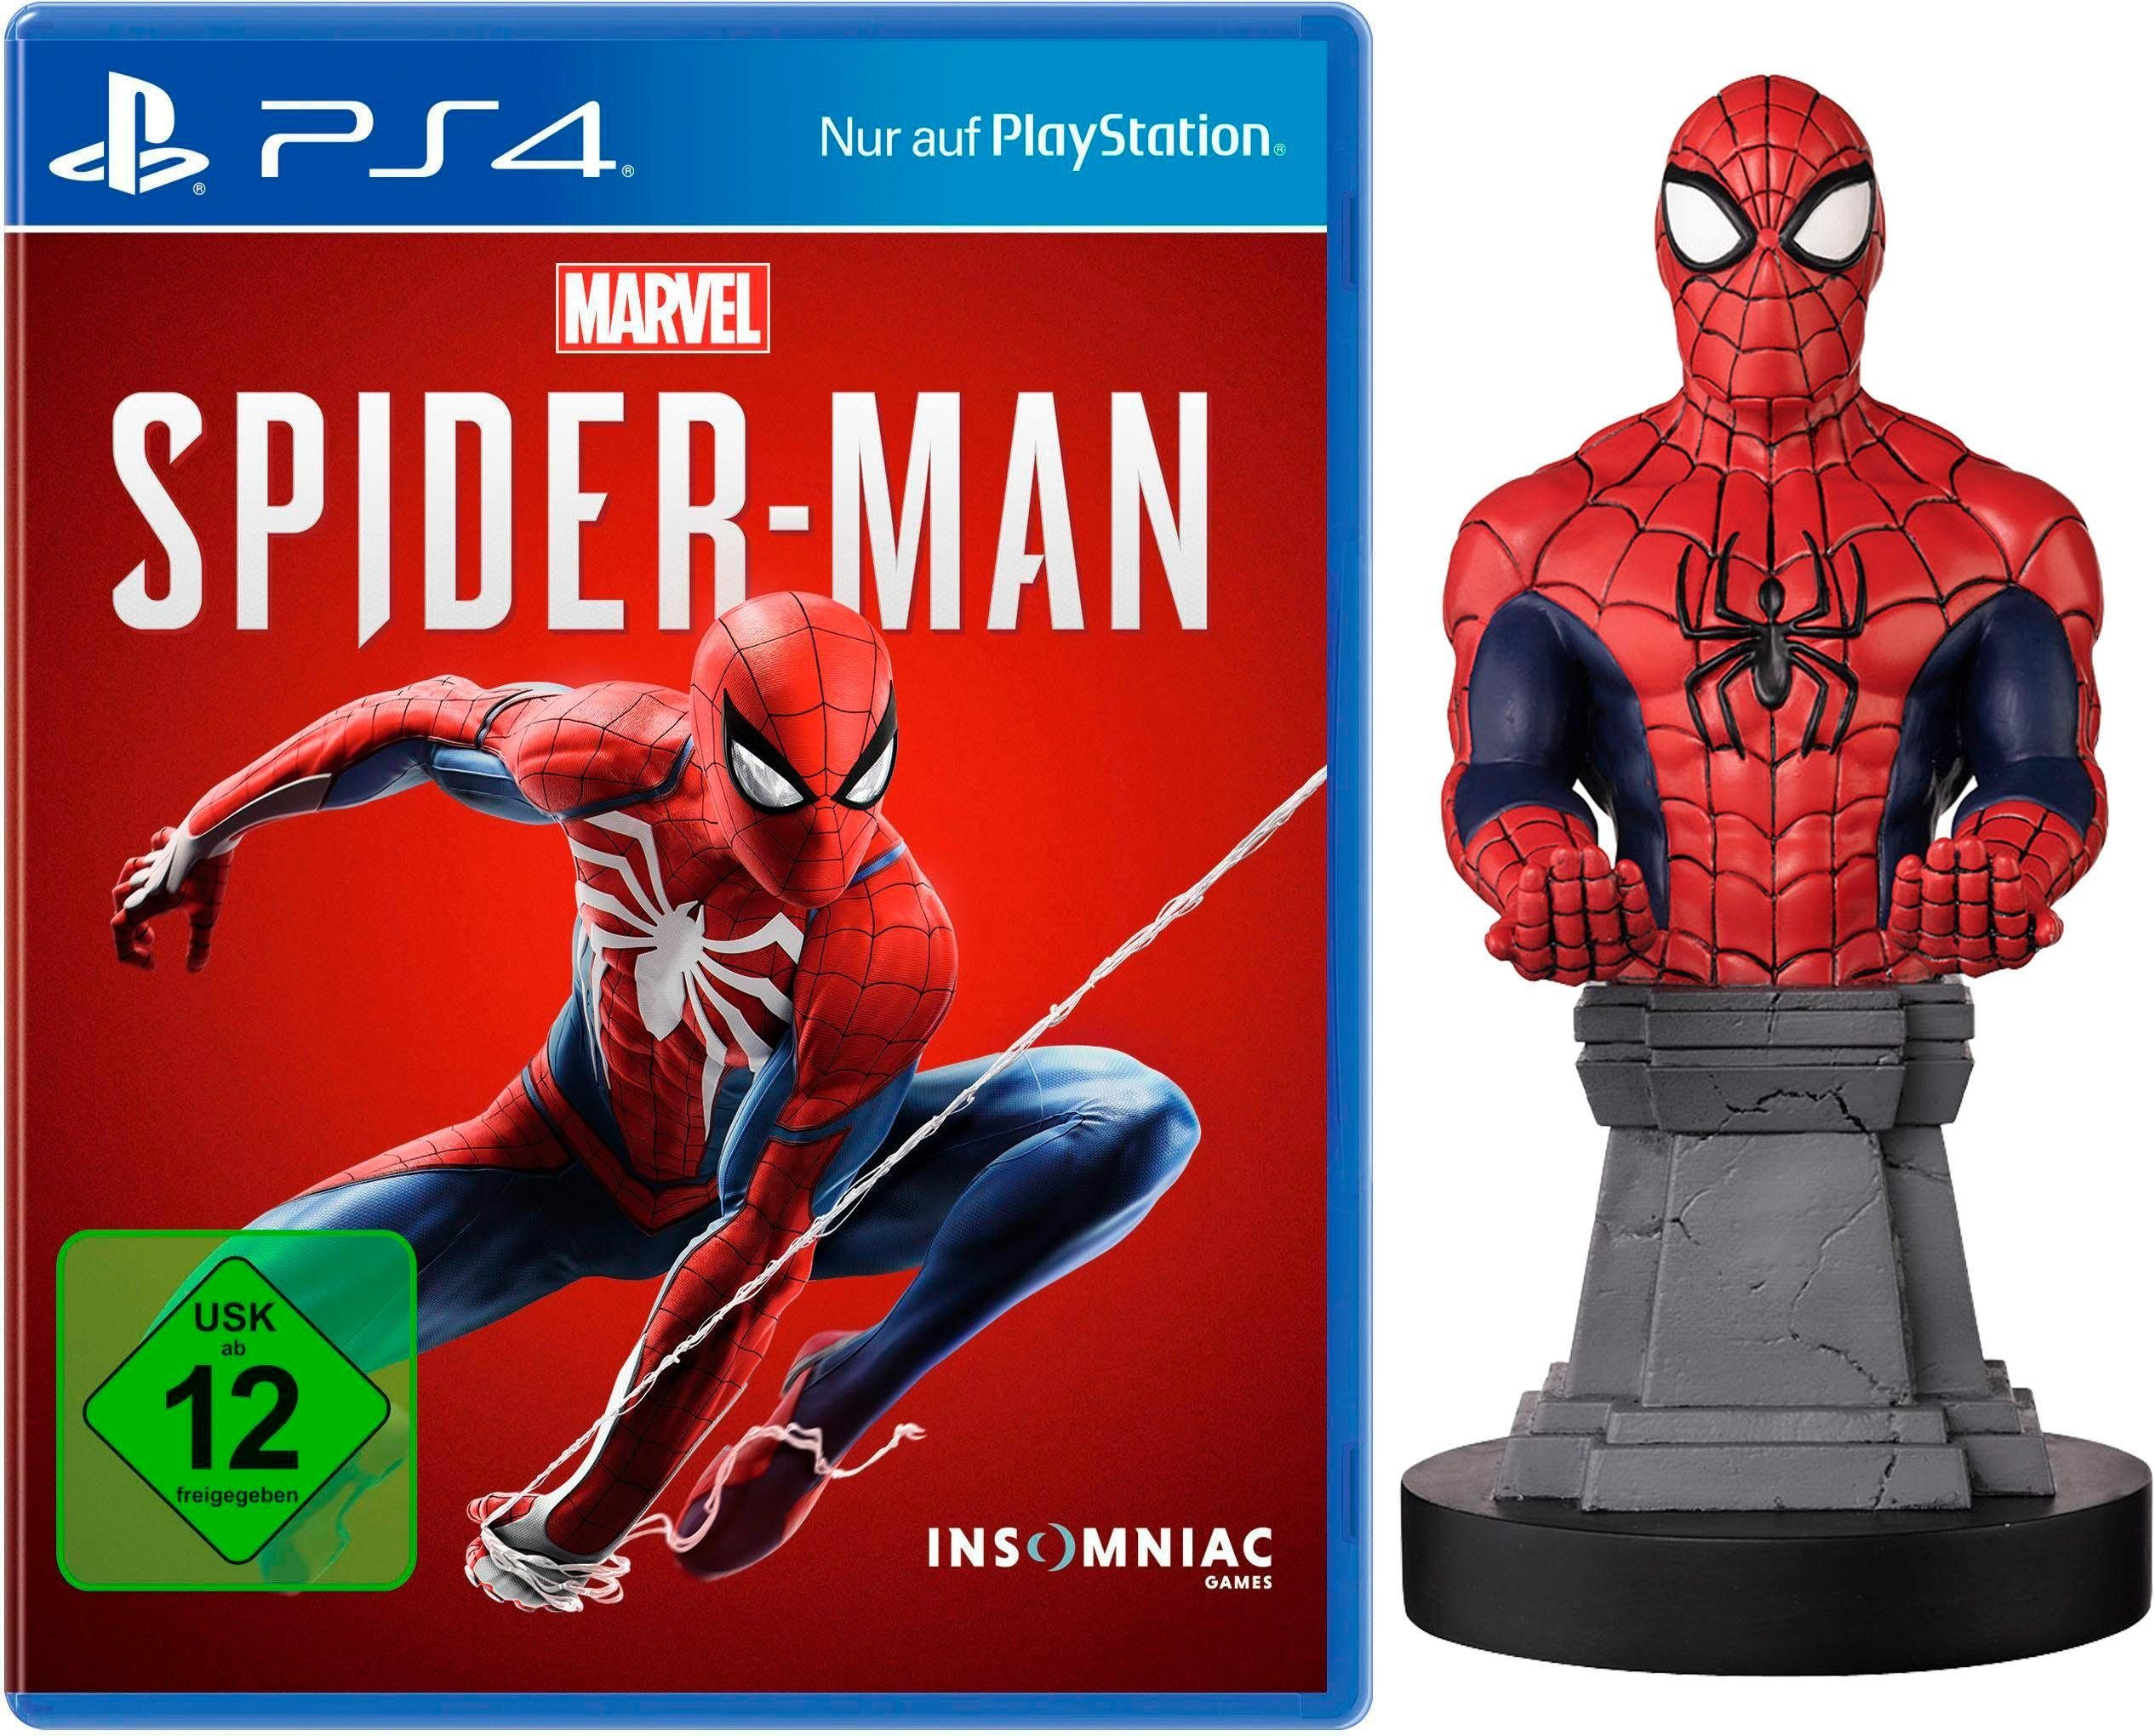 Spider-Man + Spider-Man Cable Guy PlayStation 4